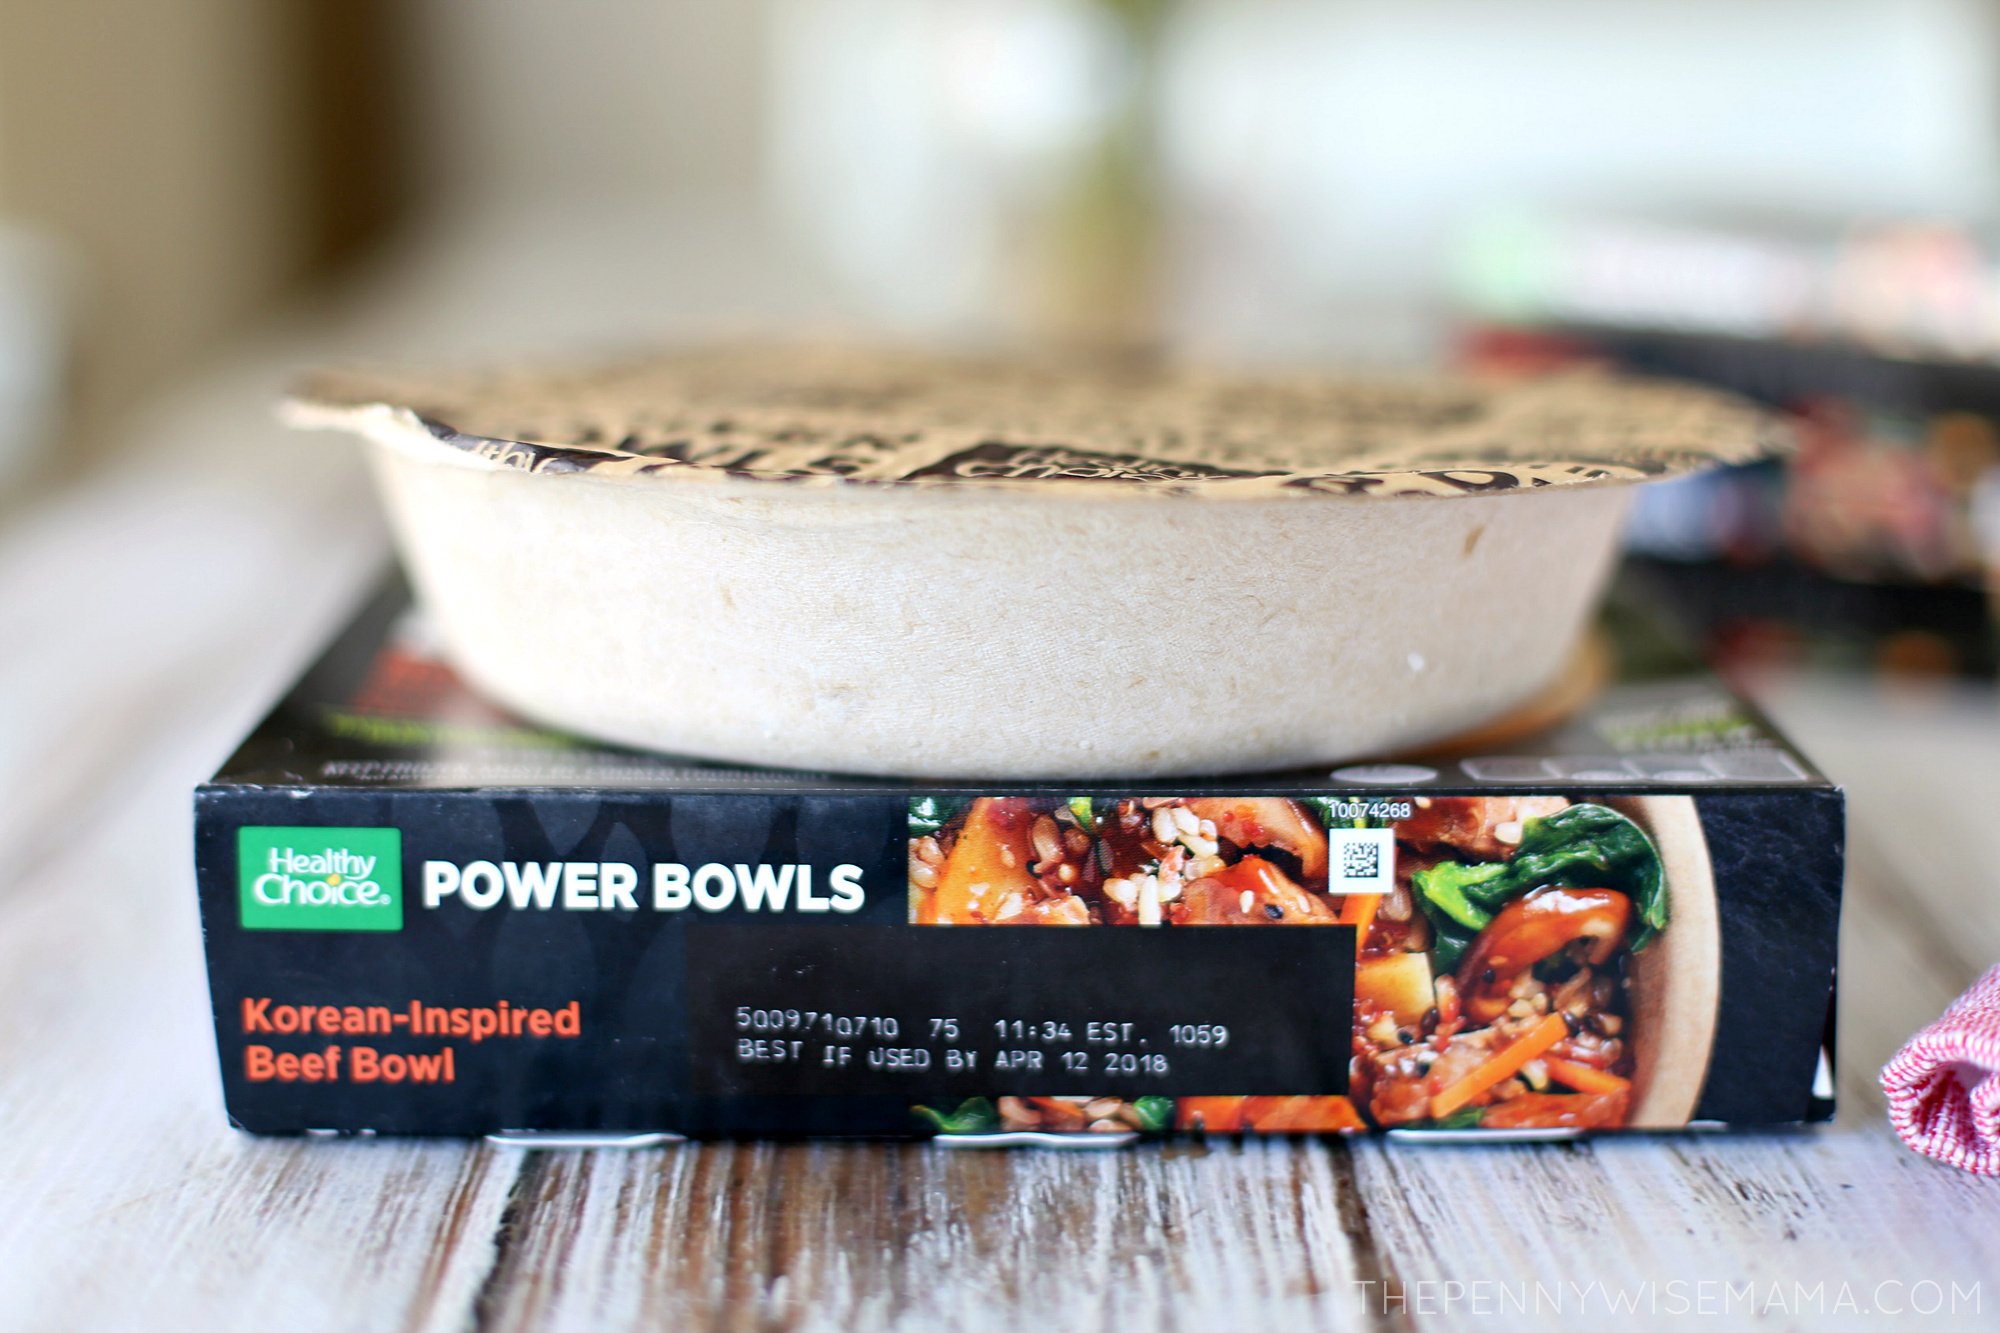 Healthy Choice Power Bowl - bowl is made with plant-fiber instead of plastic!